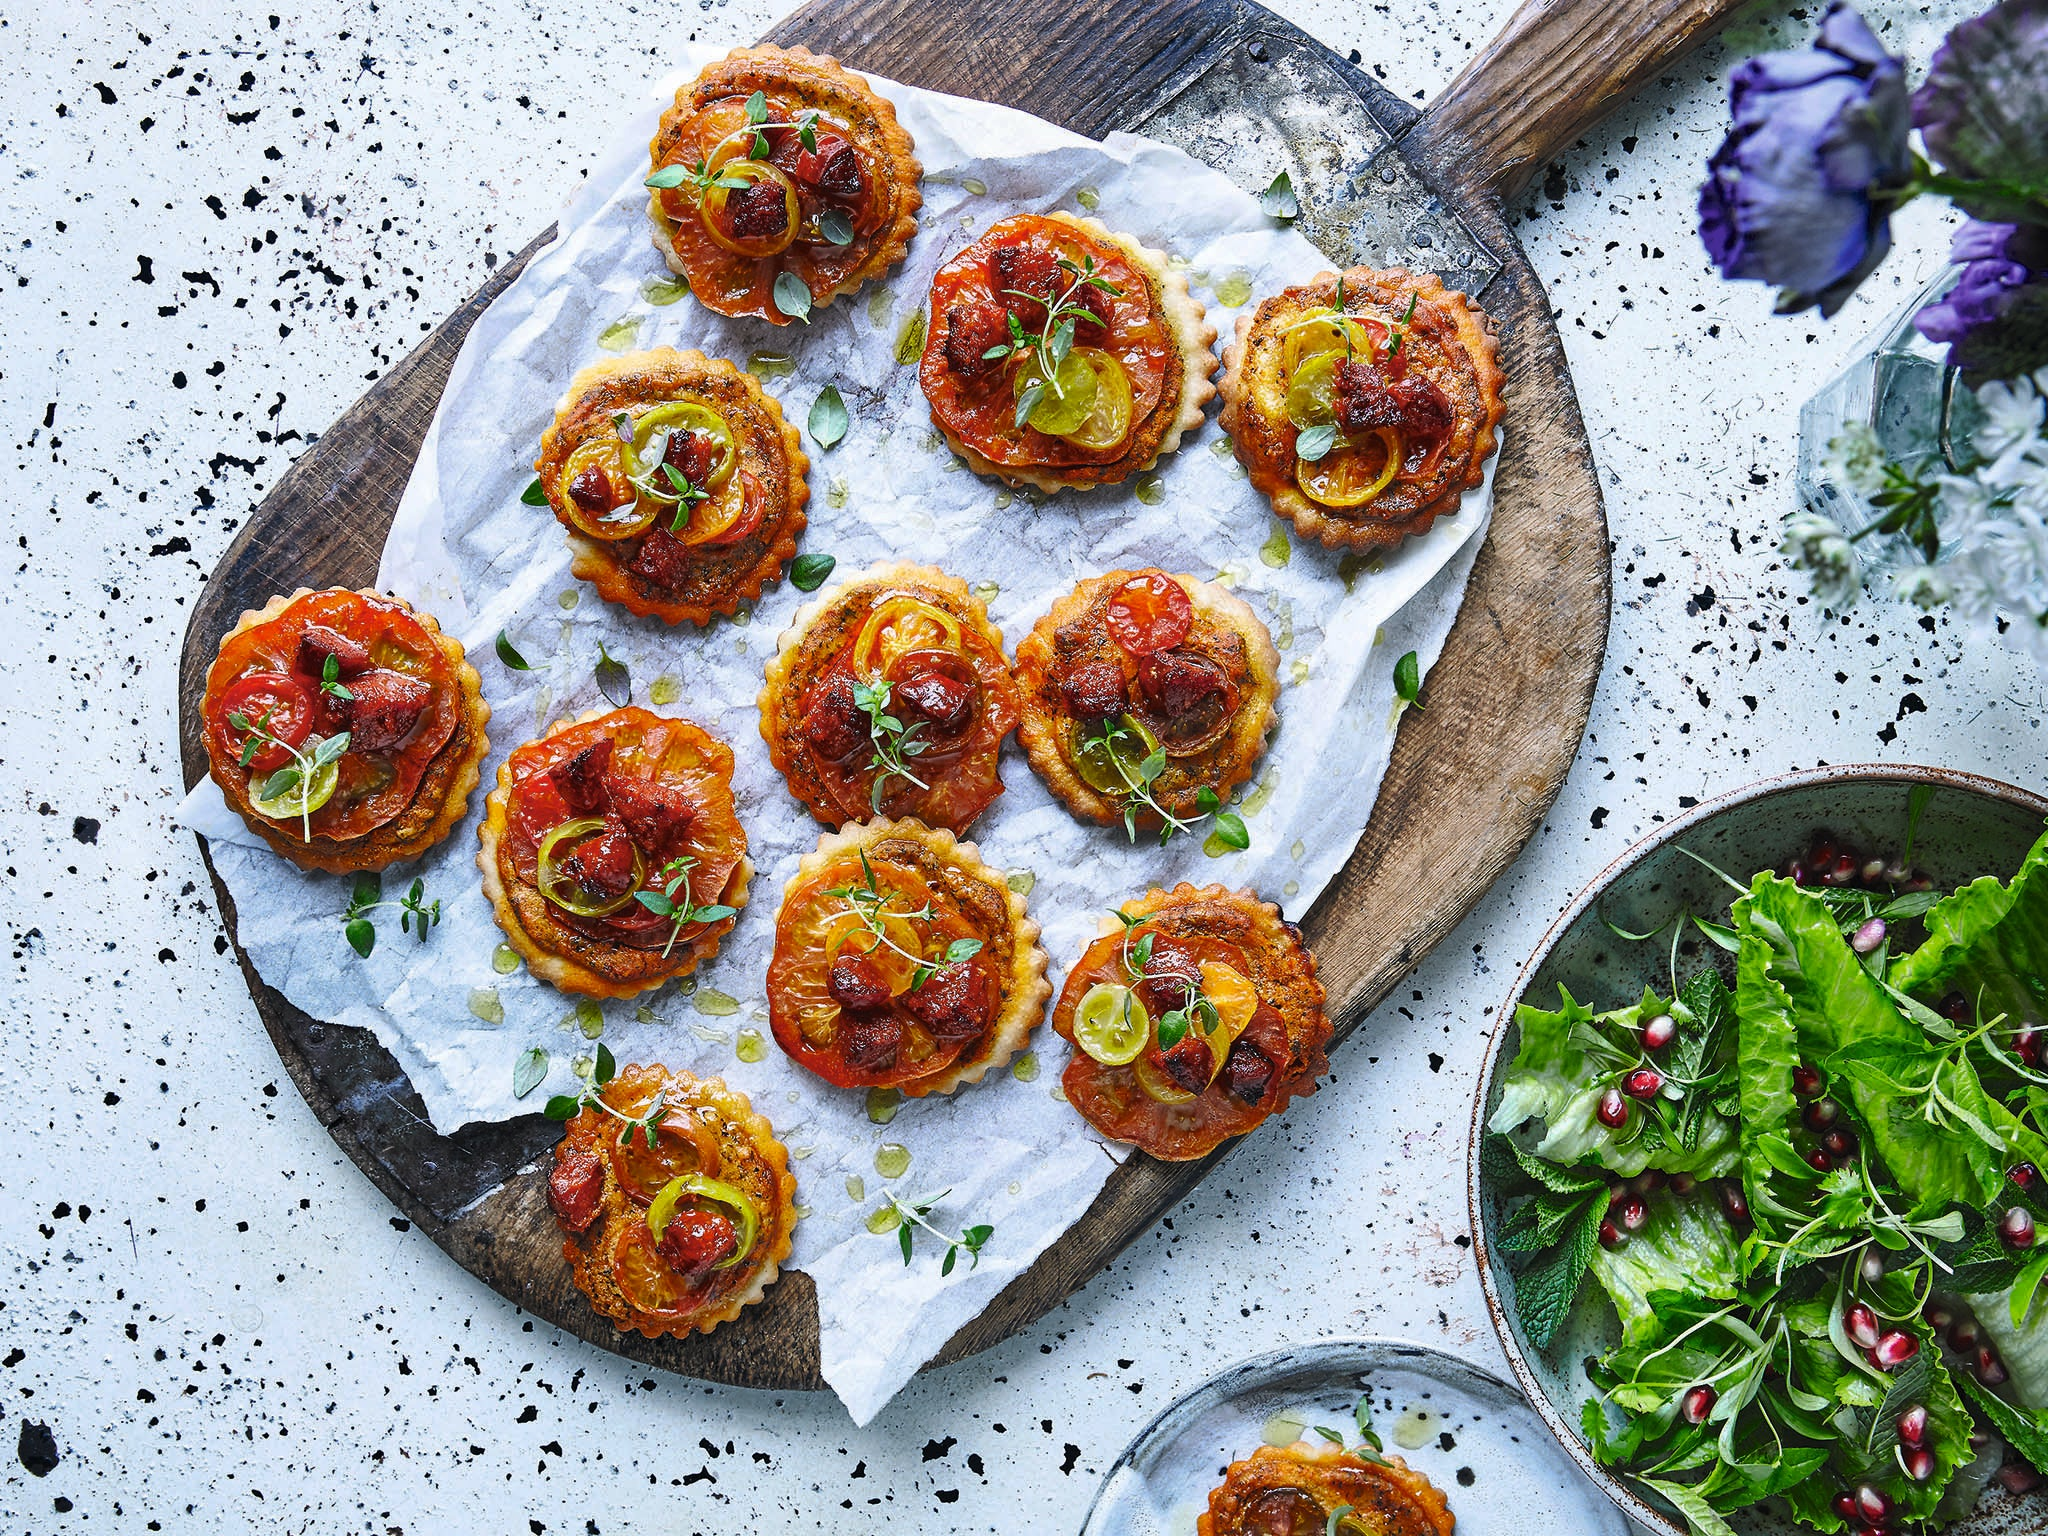 Jewelled Table recipes: from spiced kishk pizzettes to smoked cod tajen